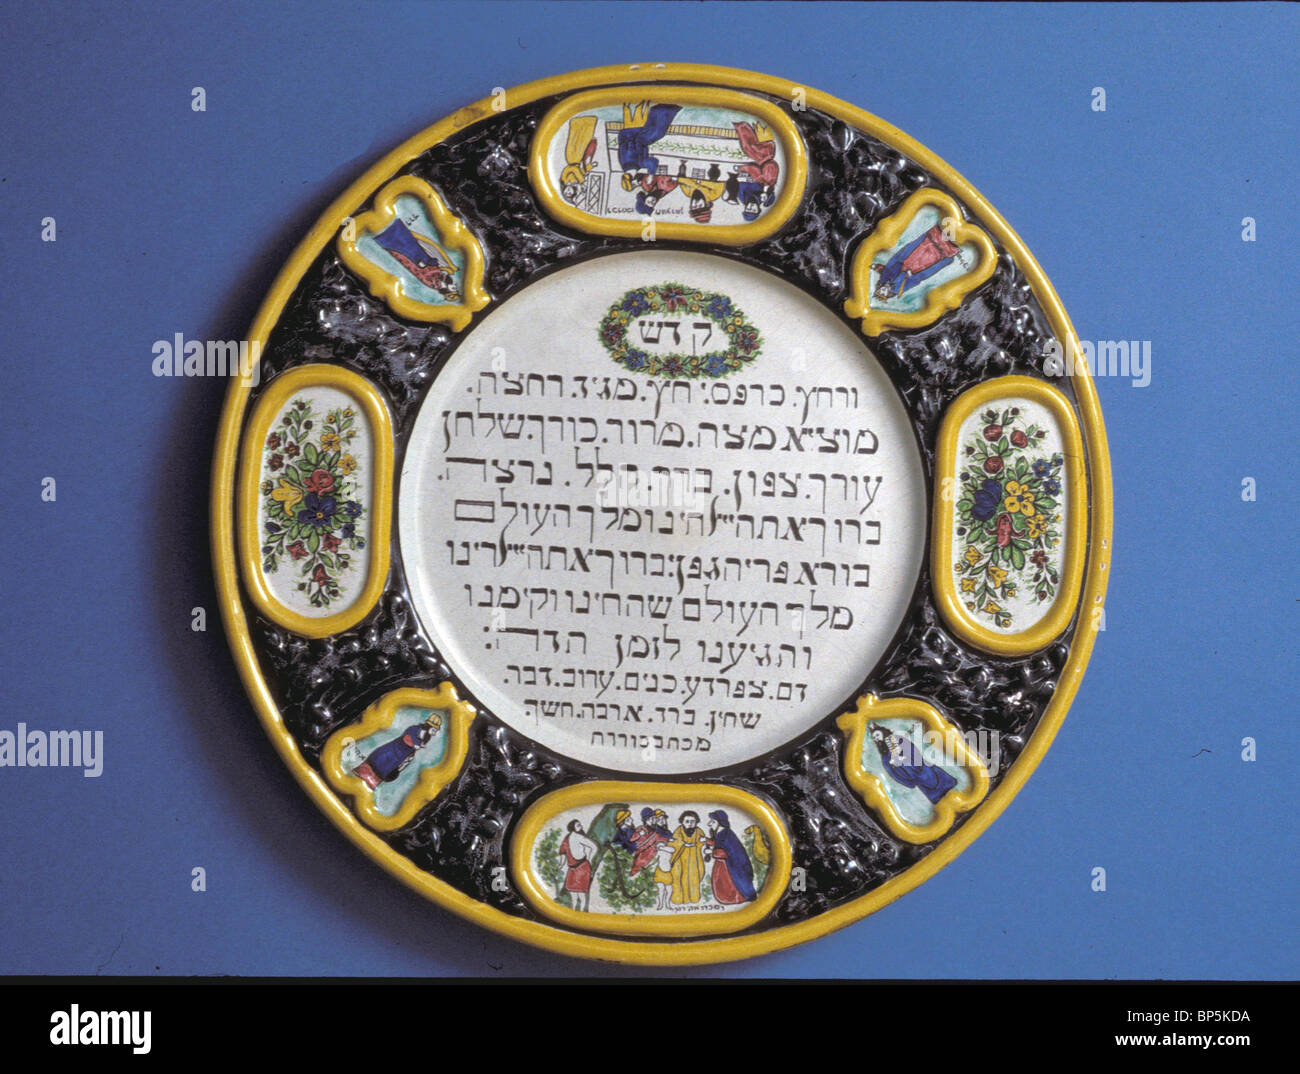 5139. SEDERPLATE, ITALY, 17TH. C. - Stock Image